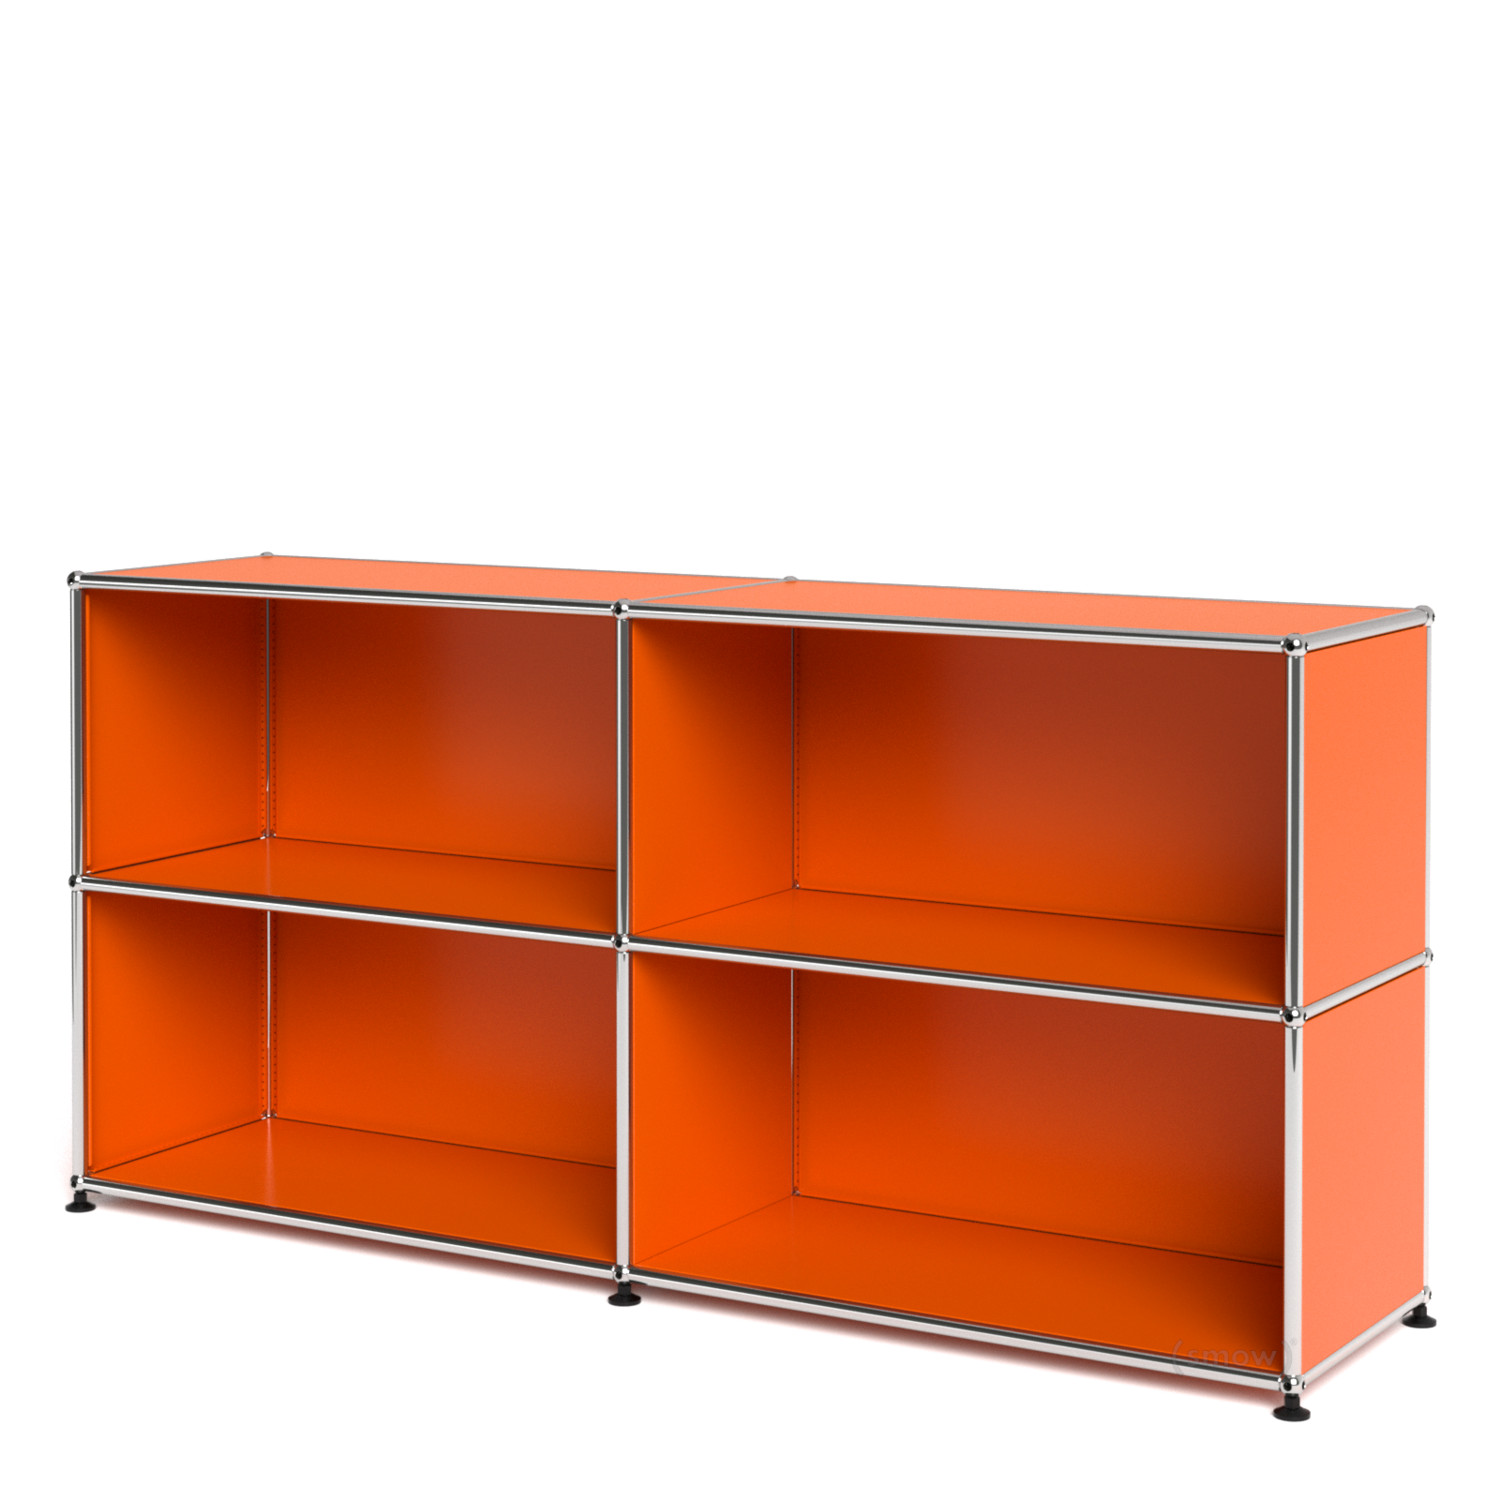 Usm haller sideboard l open pure orange ral 2004 by fritz for Sideboard usm